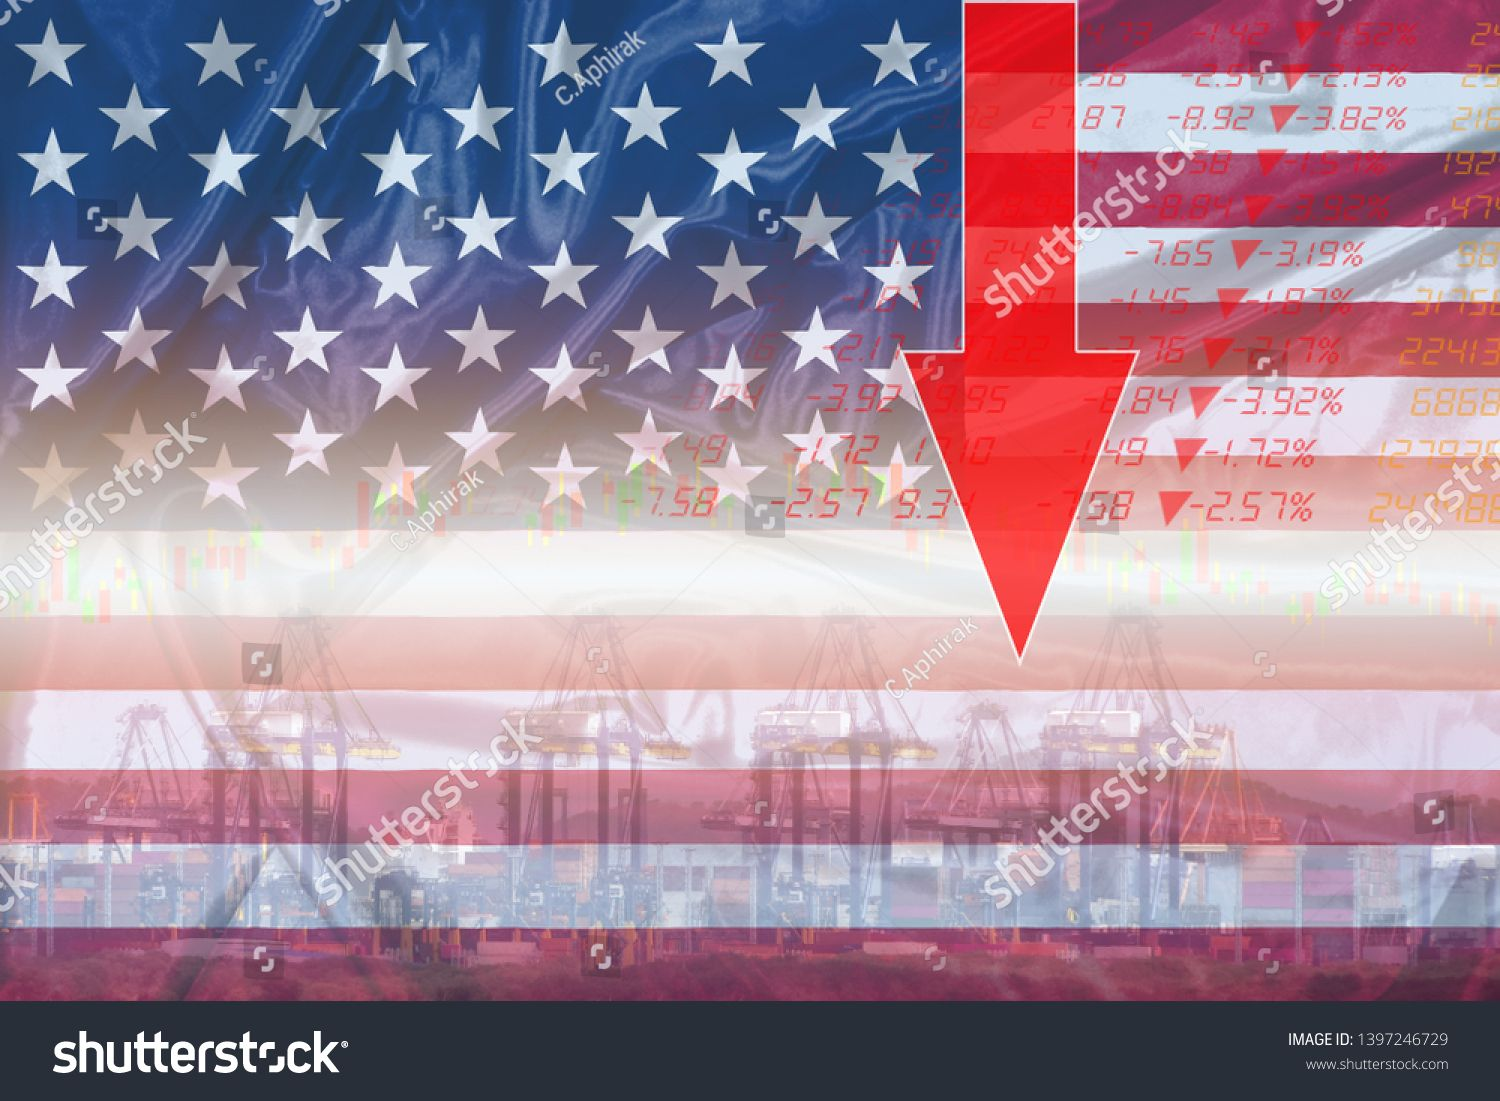 Stock Market In Usa Or America Falls Stock Exchange Analysis Indicator Trading Graph Chart Business Crisis Finan Import Business Finances Money Stock Exchange